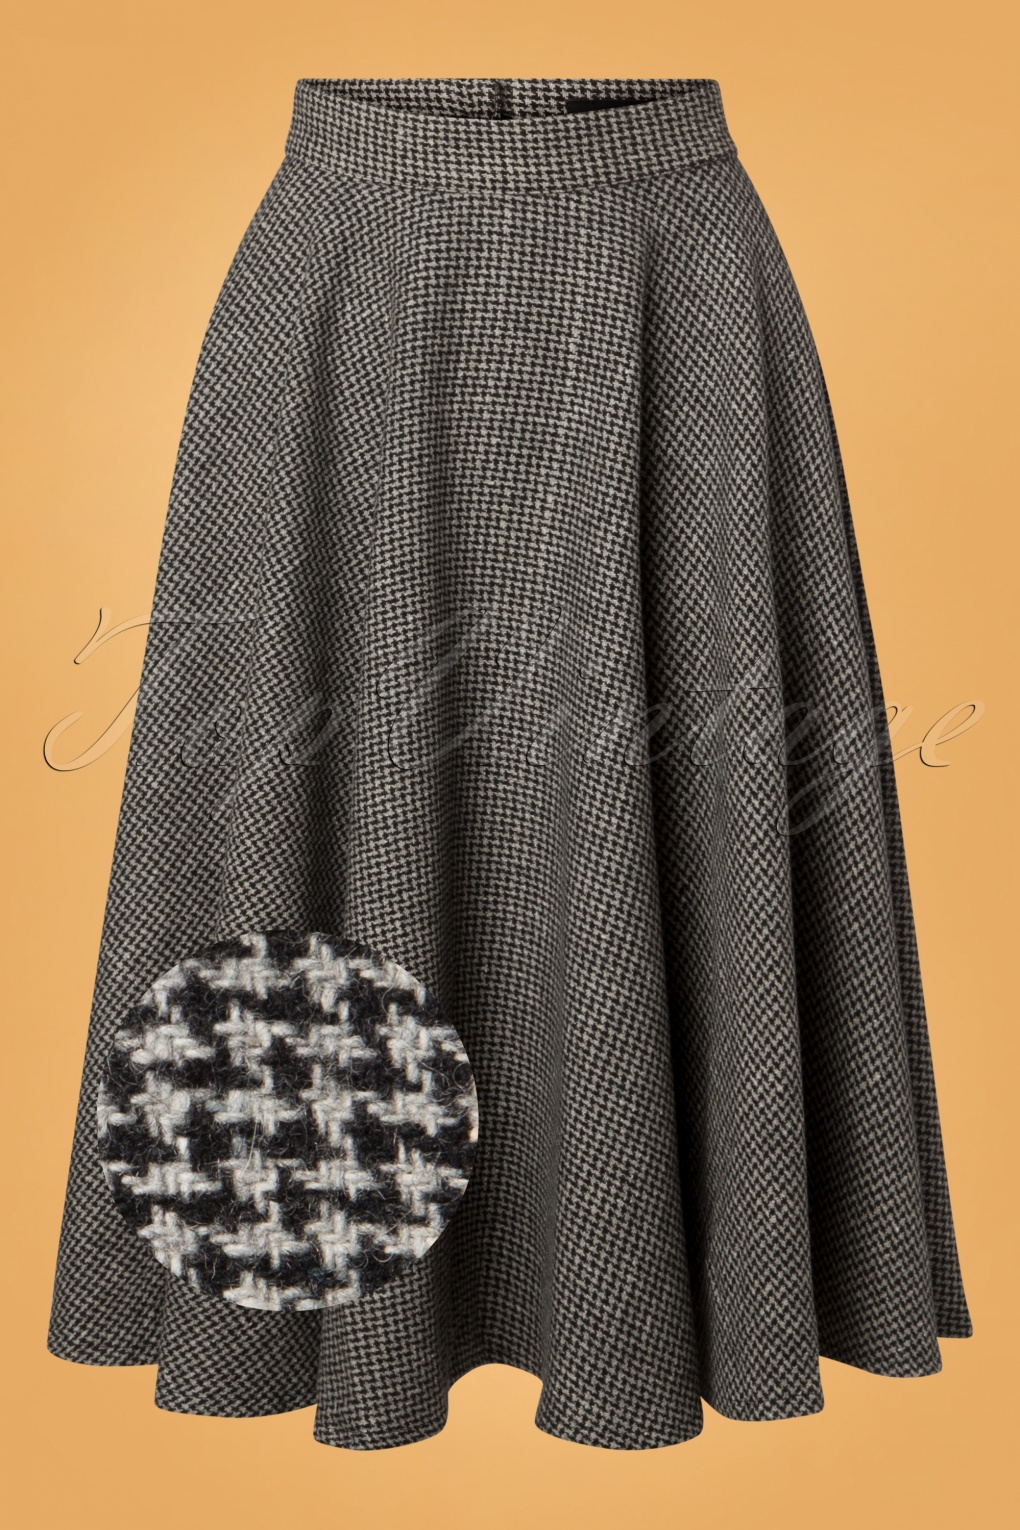 1940s Style Skirts- Vintage High Waisted Skirts 40s Sophie Houndstooth Skirt in Grey £62.70 AT vintagedancer.com